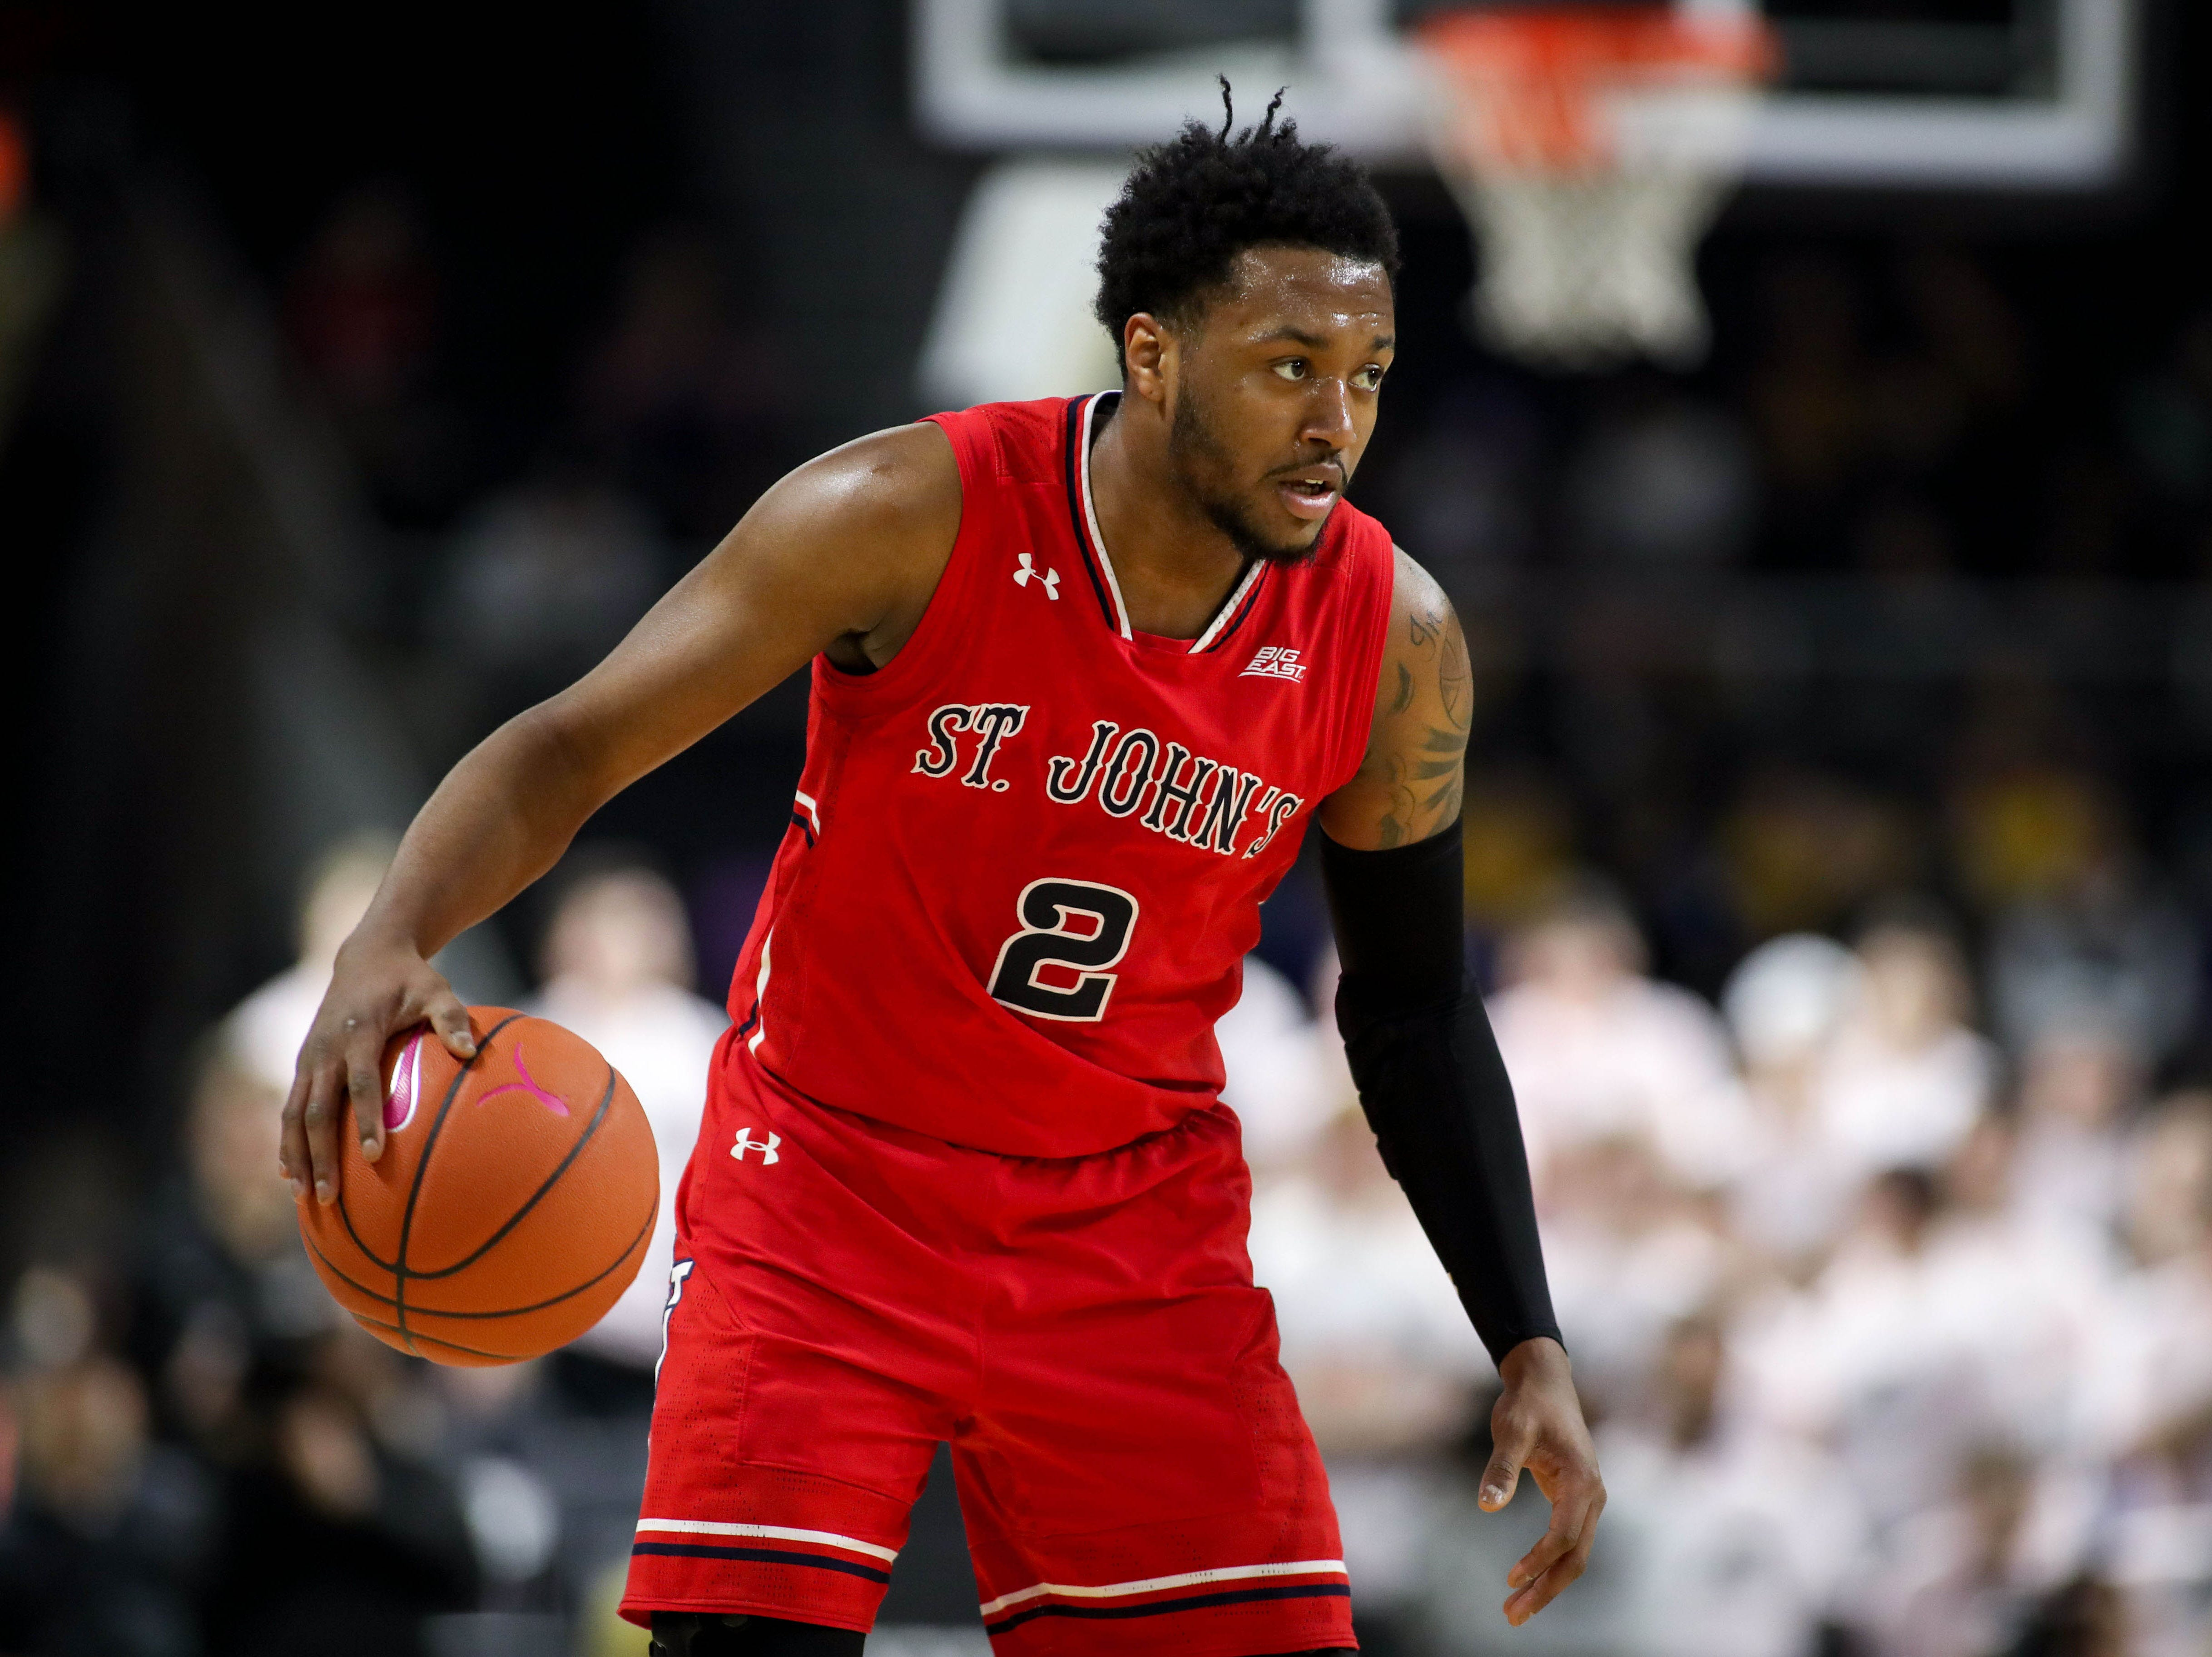 St. John's (21-12), No. 11 seed - First Four game - in West, at-large bid out of Big East Conference